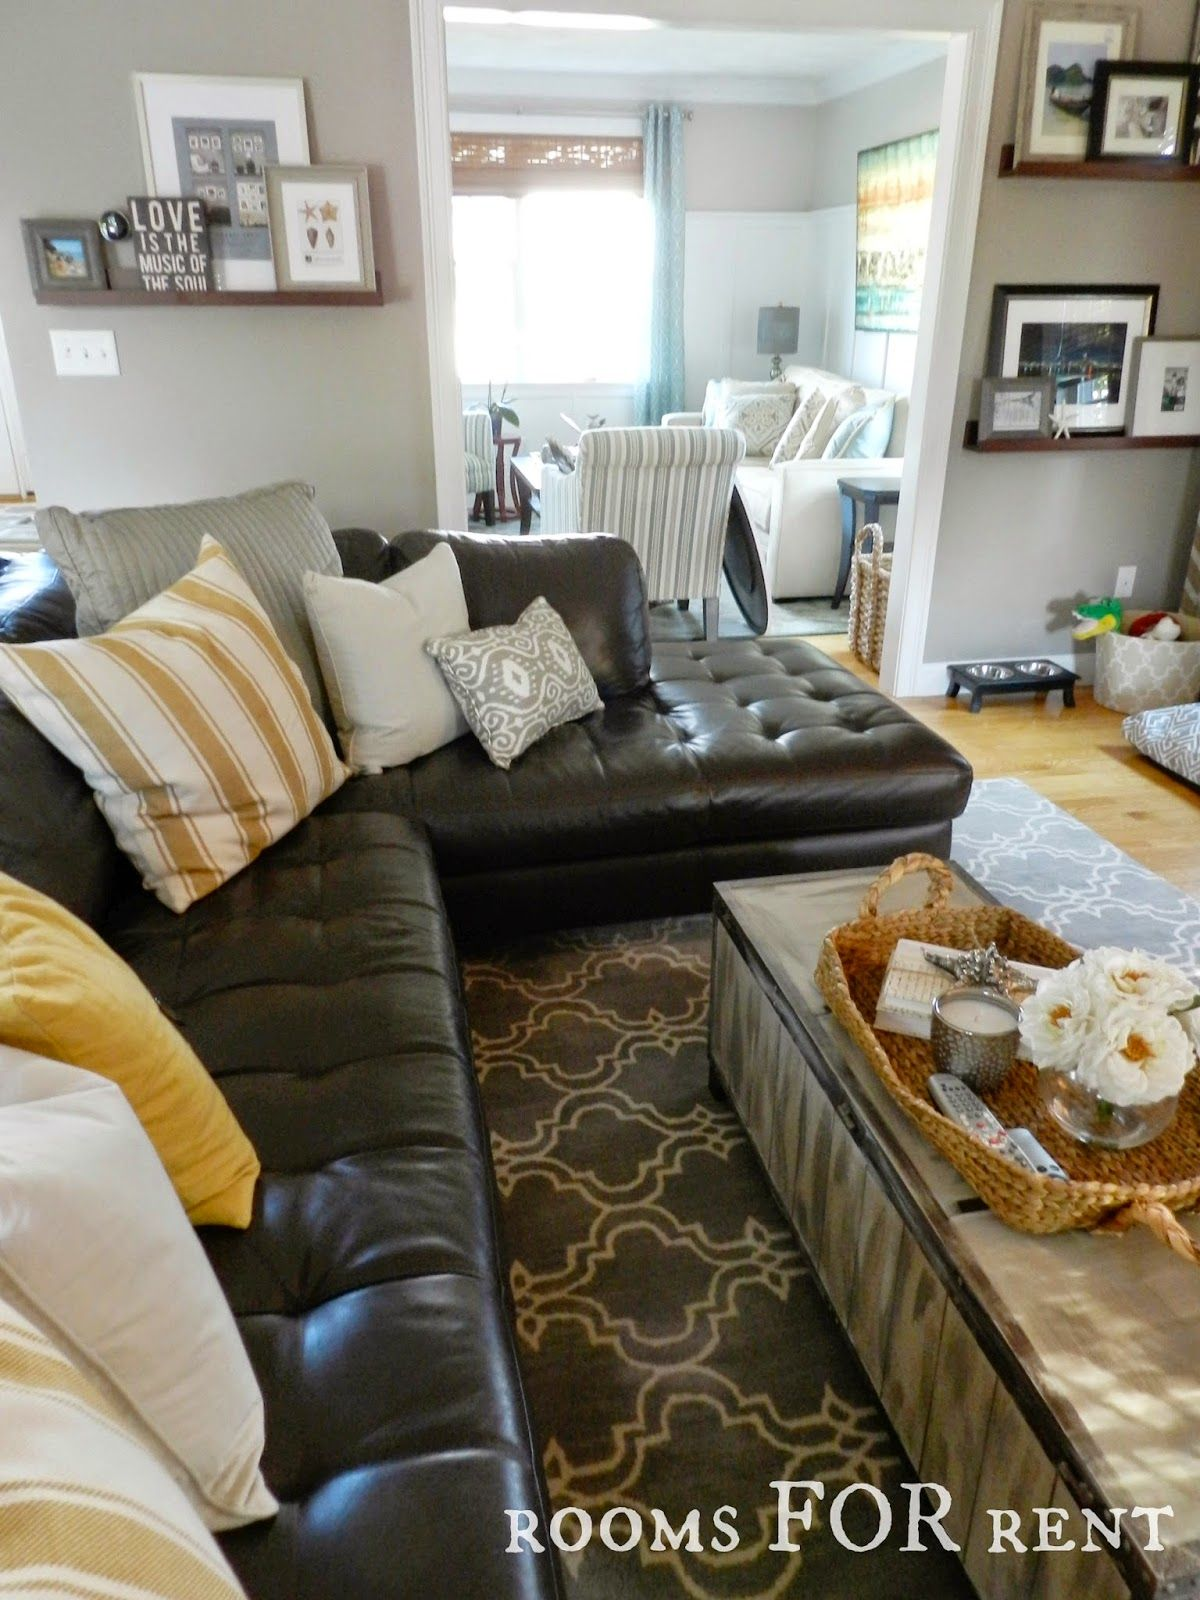 Comfy Leather Couches Inside How To Style Dark Leather Sofa den Makeover Use These Tips For Brown Comfy Leather Couches Key Is Window Treatment Pillows Rug Makeover For Our Homenow